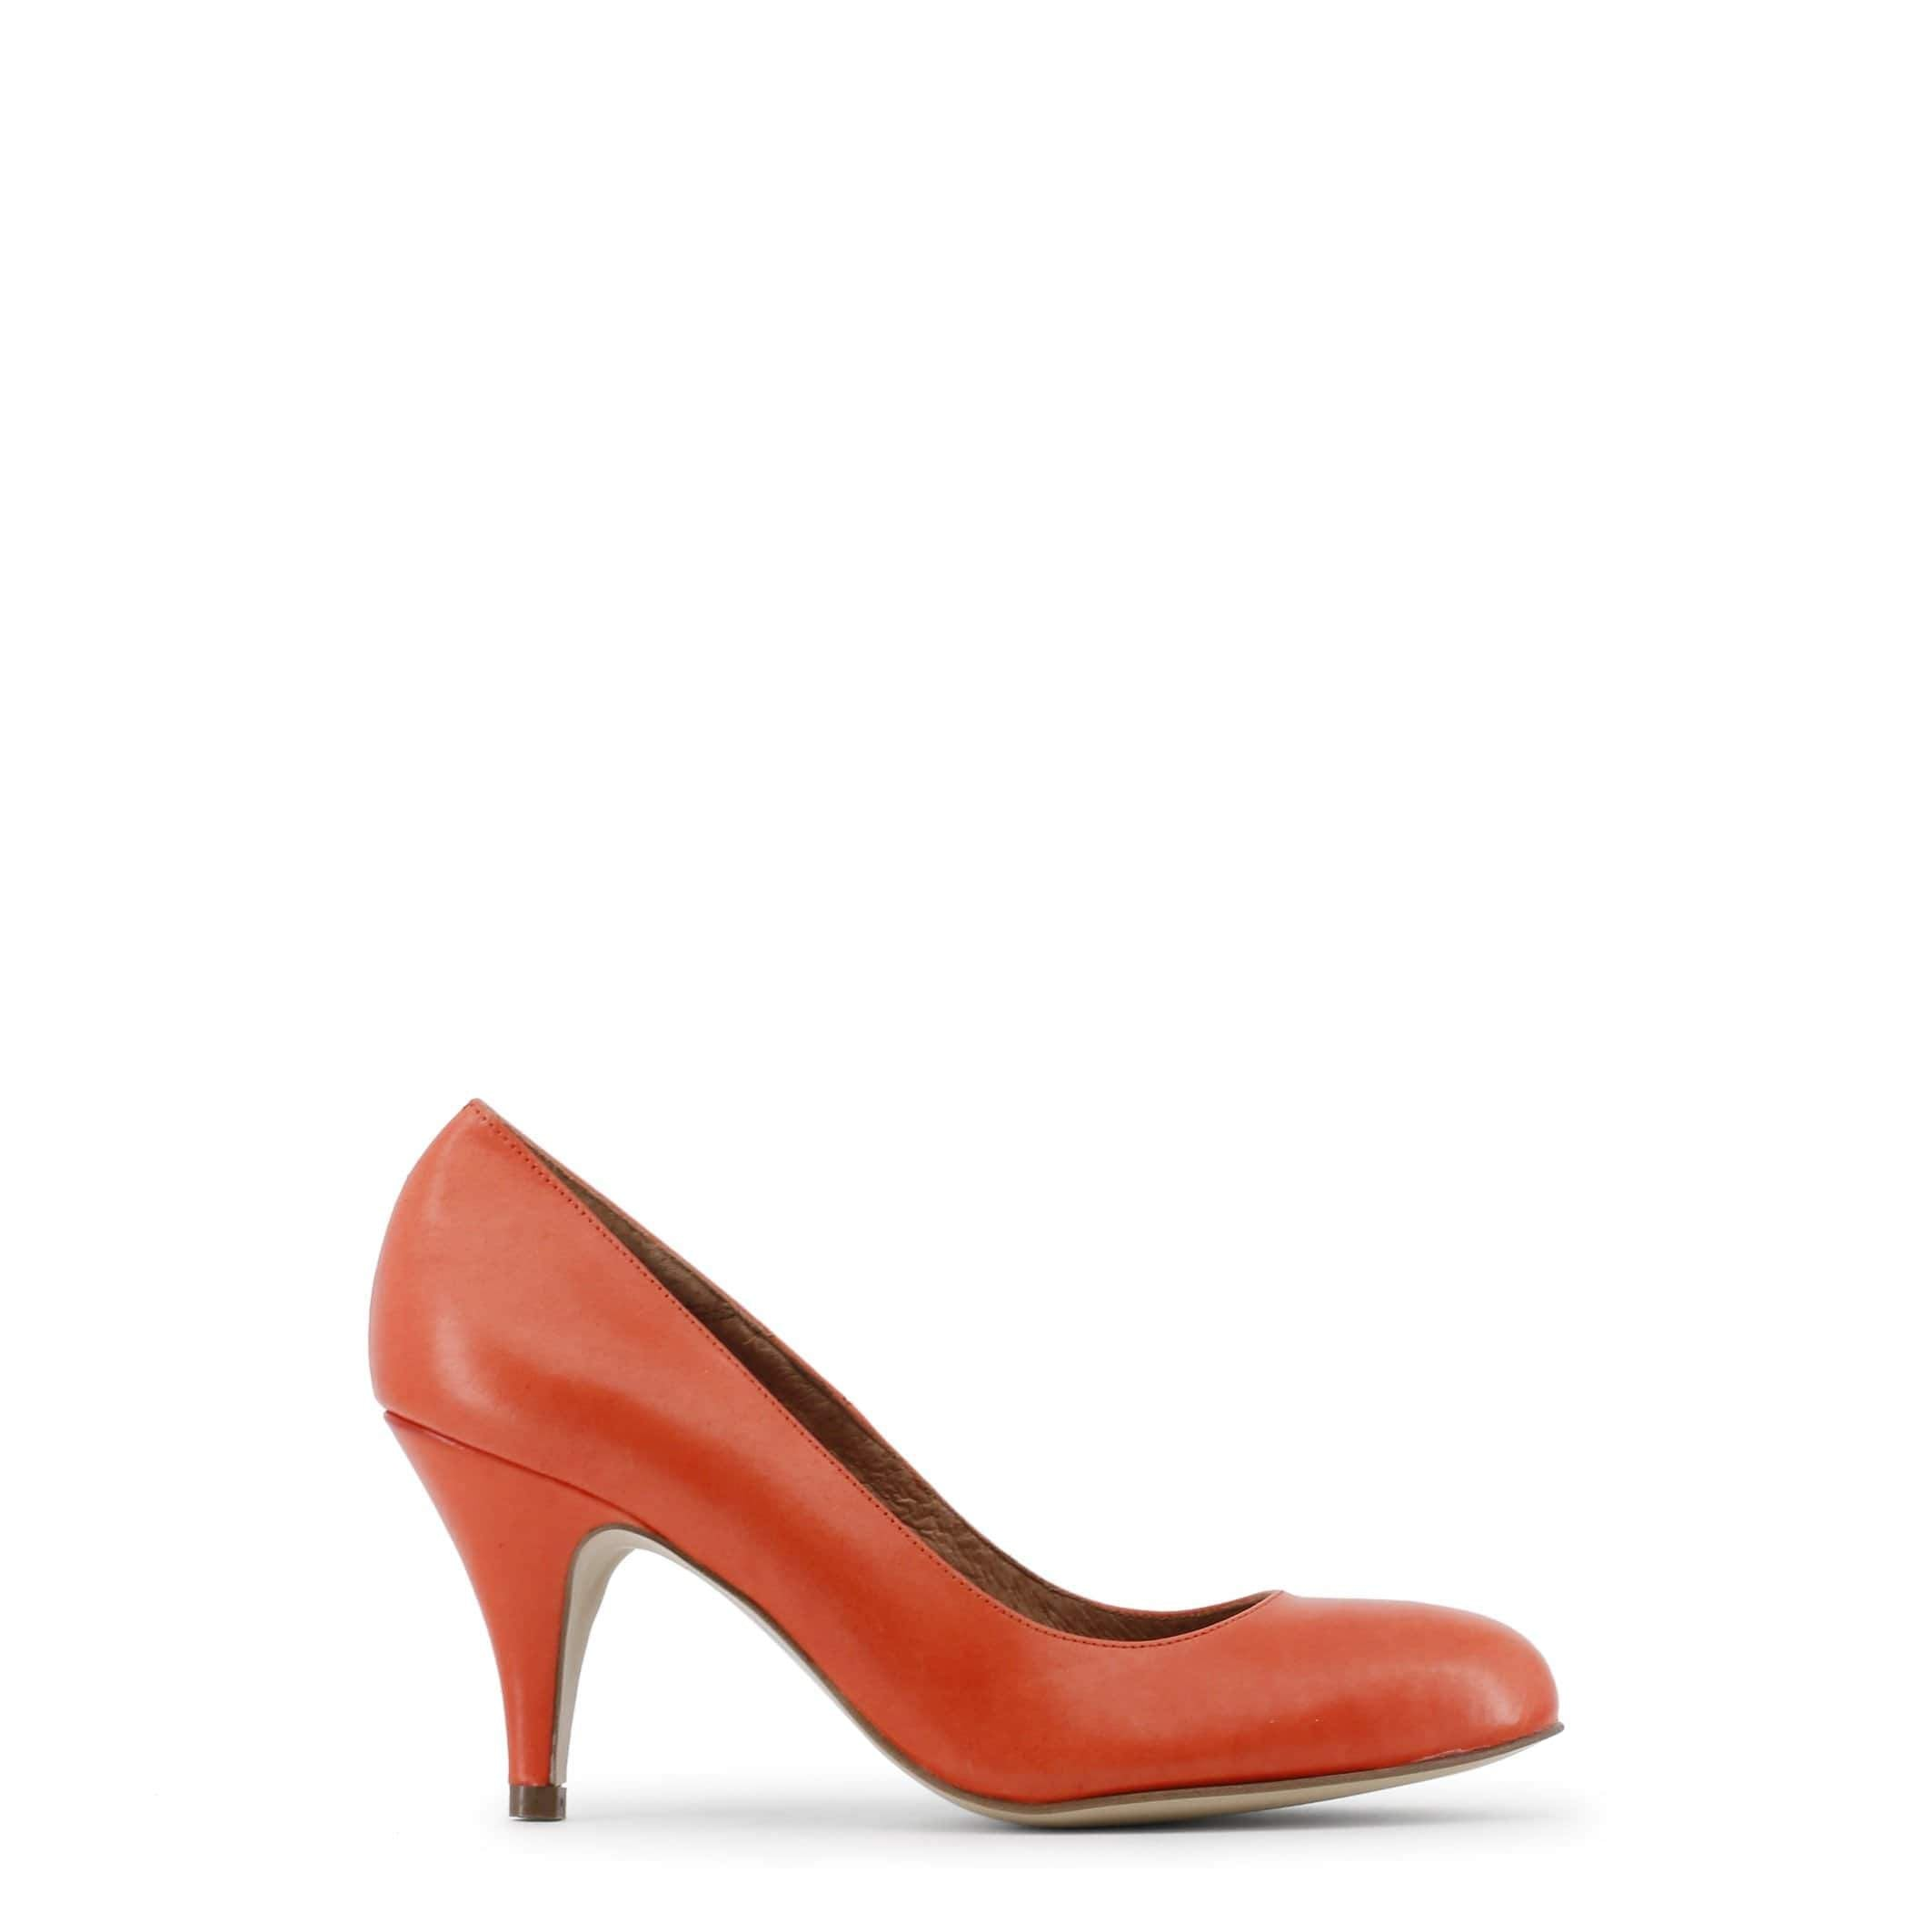 Arnaldo Toscani Shoes Pumps & Heels red / EU 36 Arnaldo Toscani - 7181101